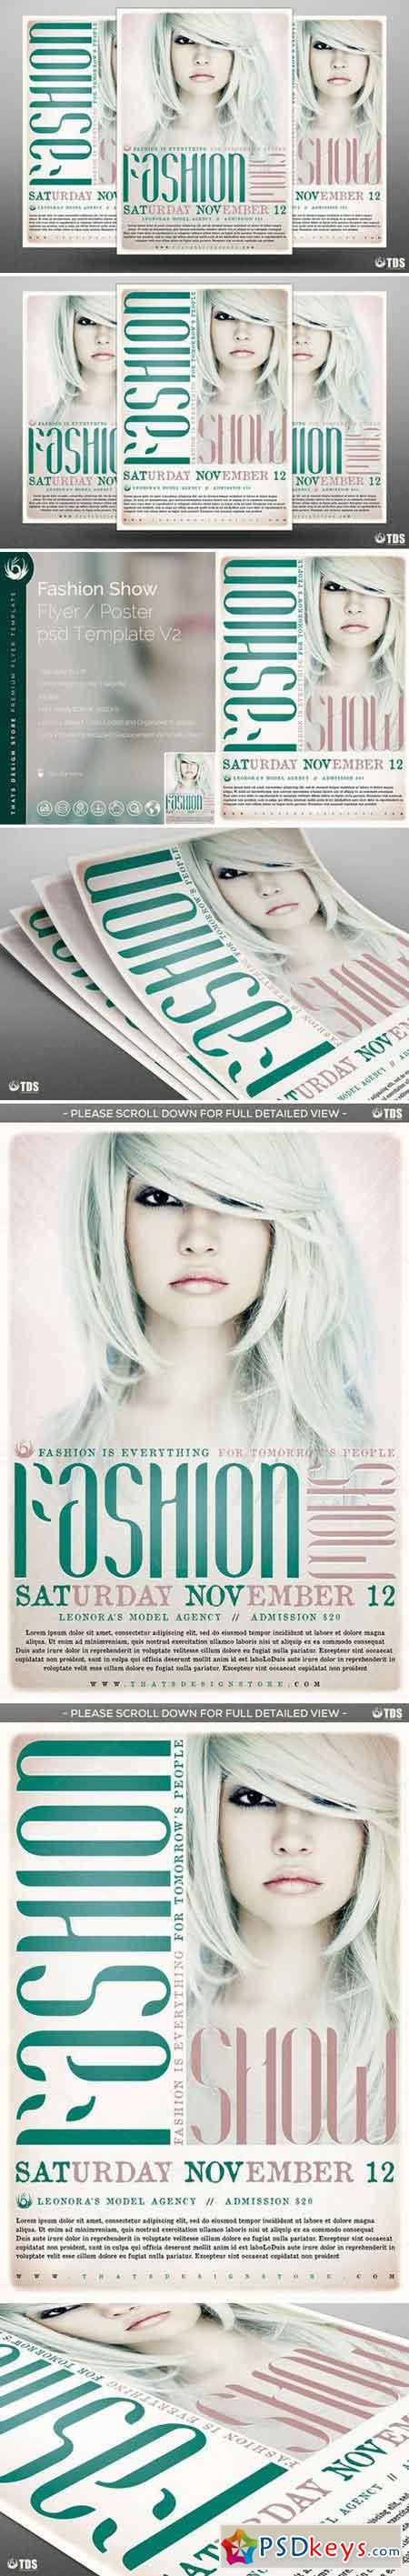 Fashion Show Flyer Template V2 642292